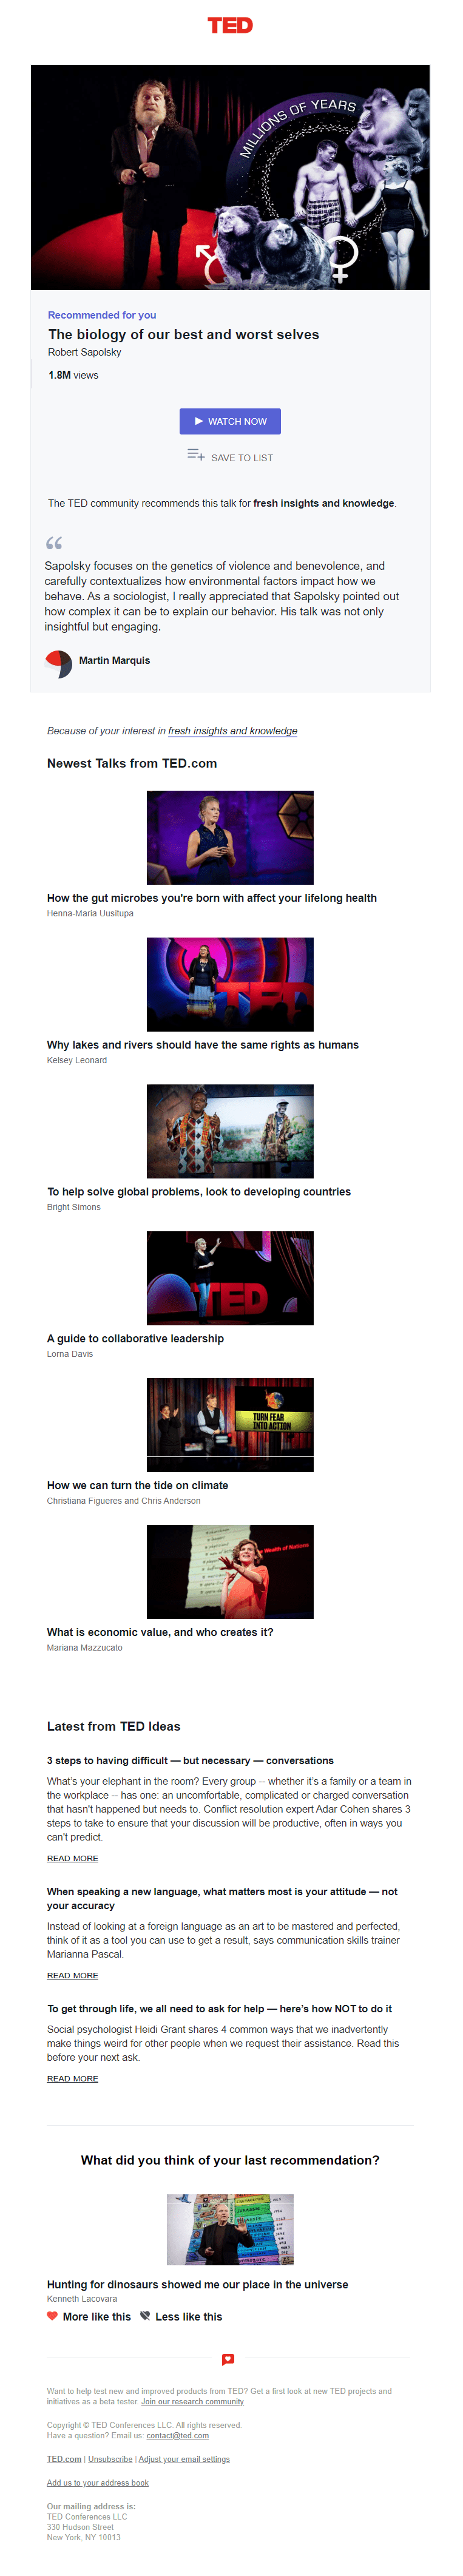 Personalized recommendations from TED